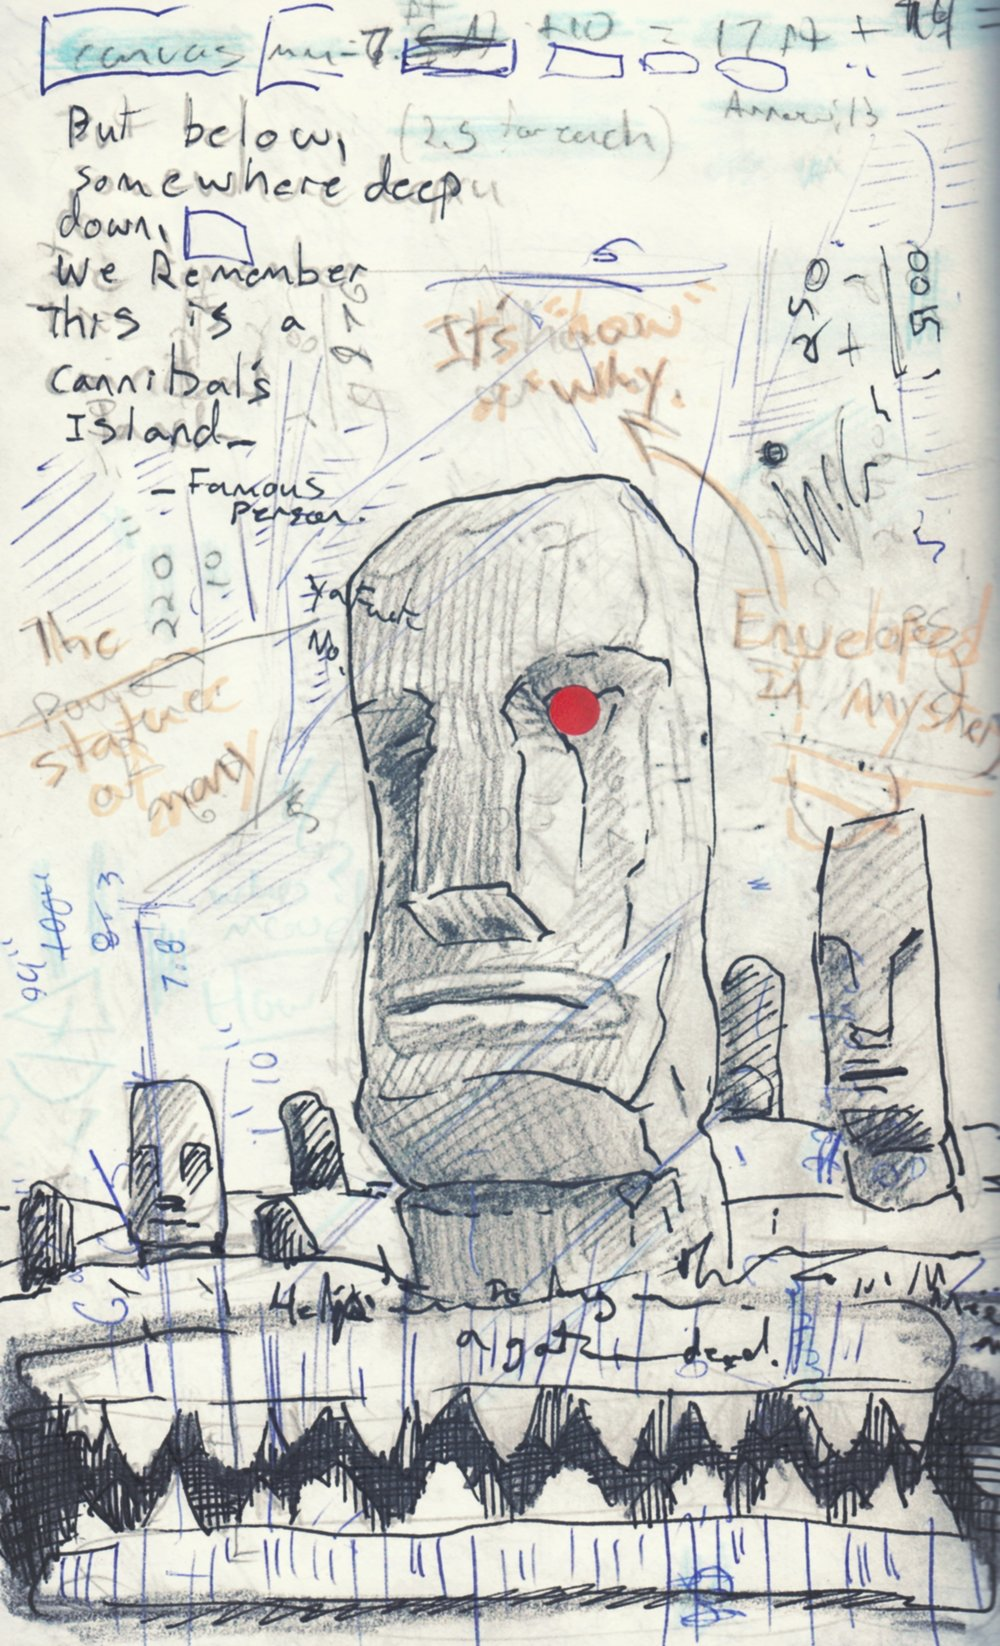 The stone heads; Aliens, cannibals, mystery or just a colonial past....